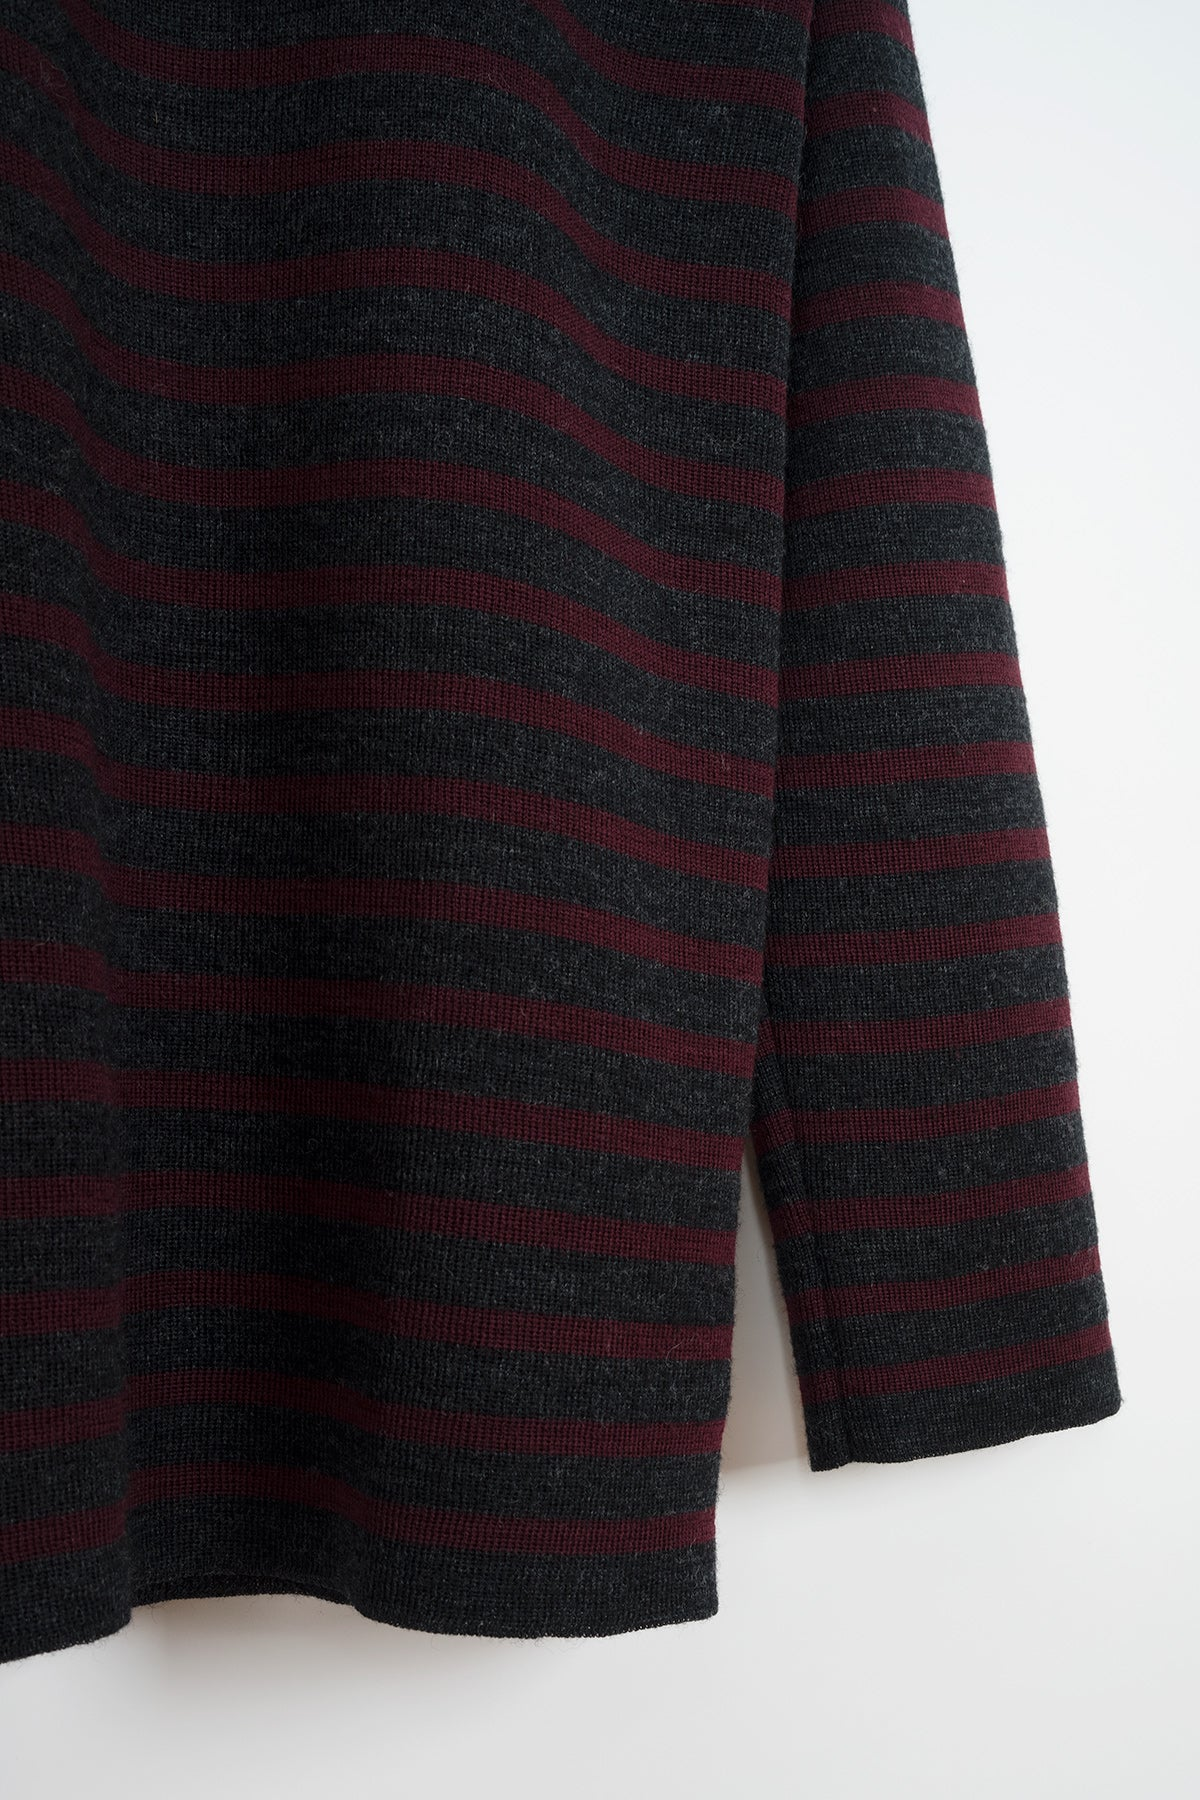 "2002 A/W STRIPED ""FISHERMAN'S"" SWEATER BY MISS DEANNA"